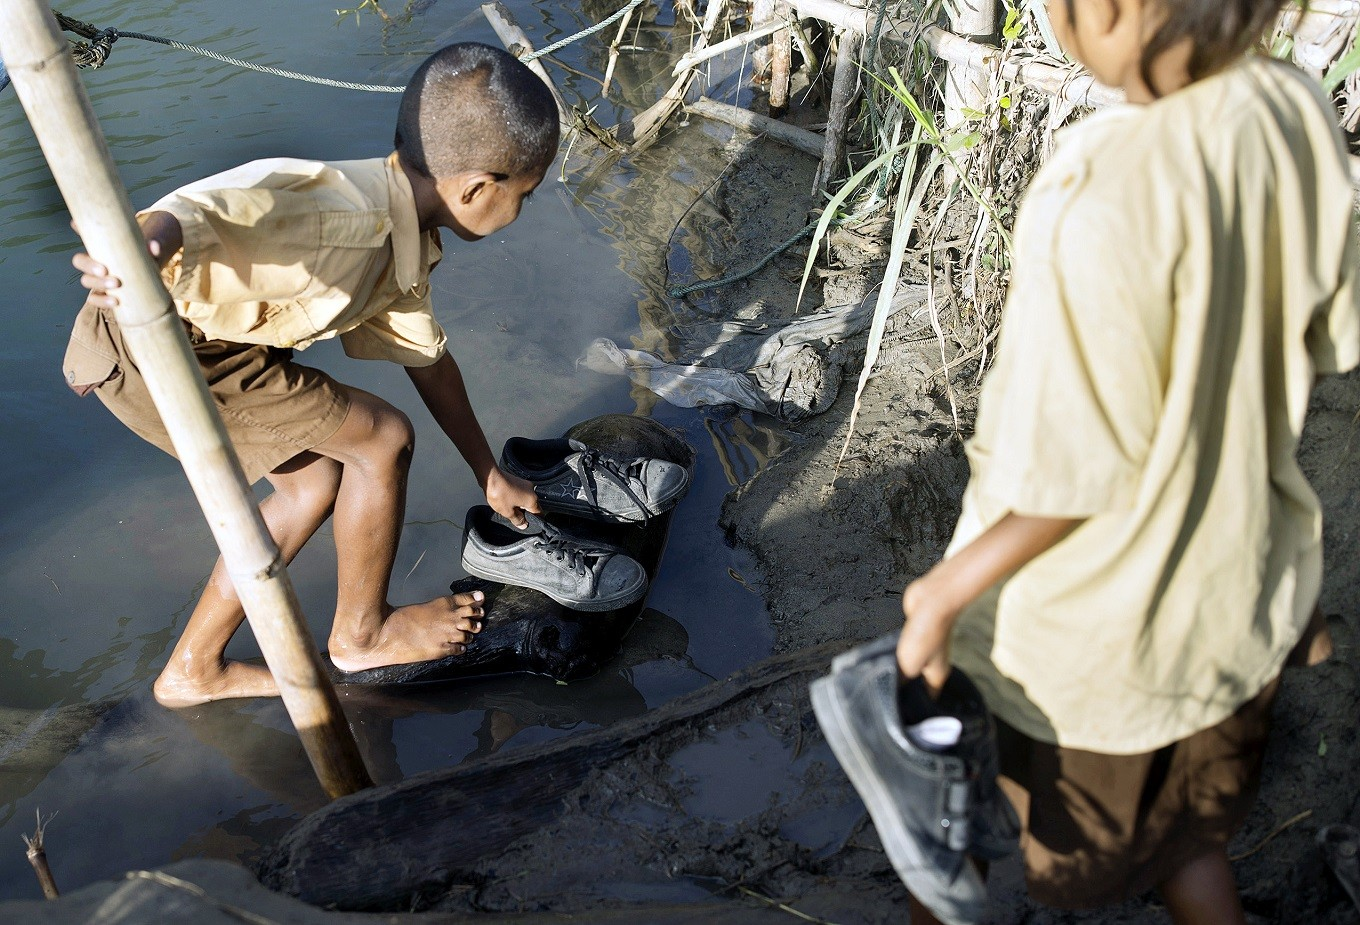 Tidy up: A child laces his shoes after crossing a 65-meter-wide river.